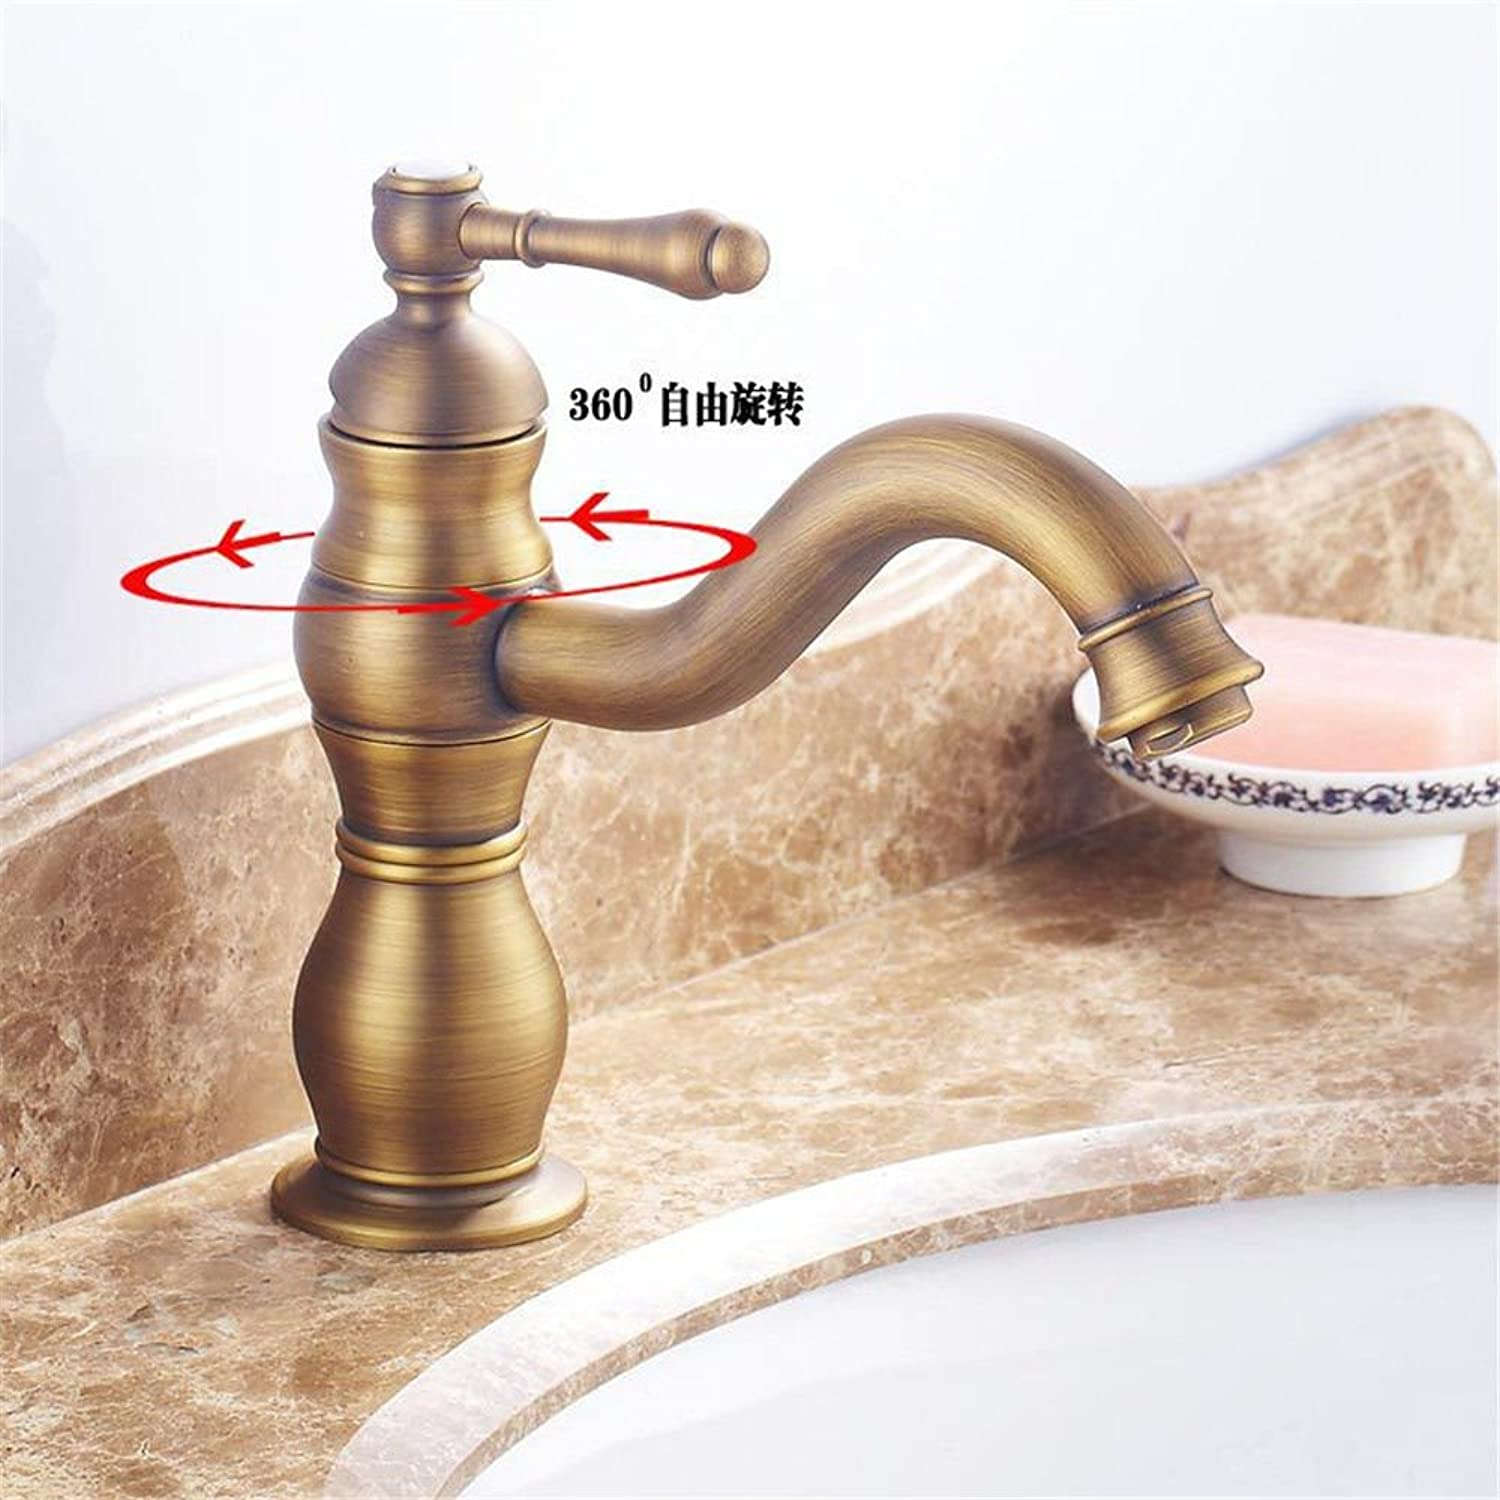 Commercial Single Lever Pull Down Kitchen Sink Faucet Brass Constructed Polished European Style Copper Antique Dish redating Faucet Sink Kitchen Faucet Art Basin Faucet